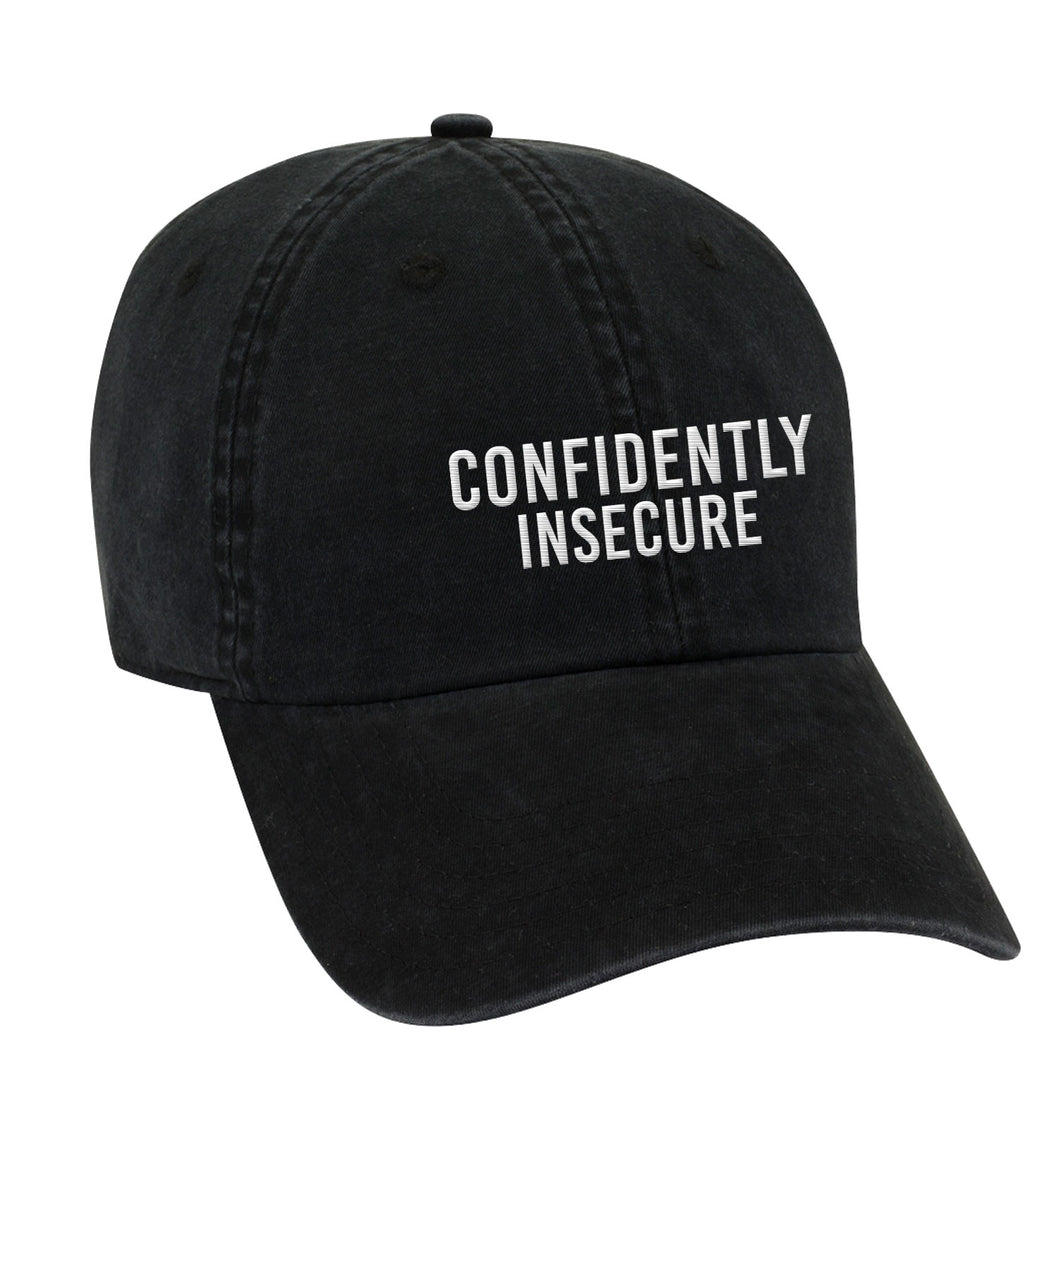 Confidently Insecure Hat